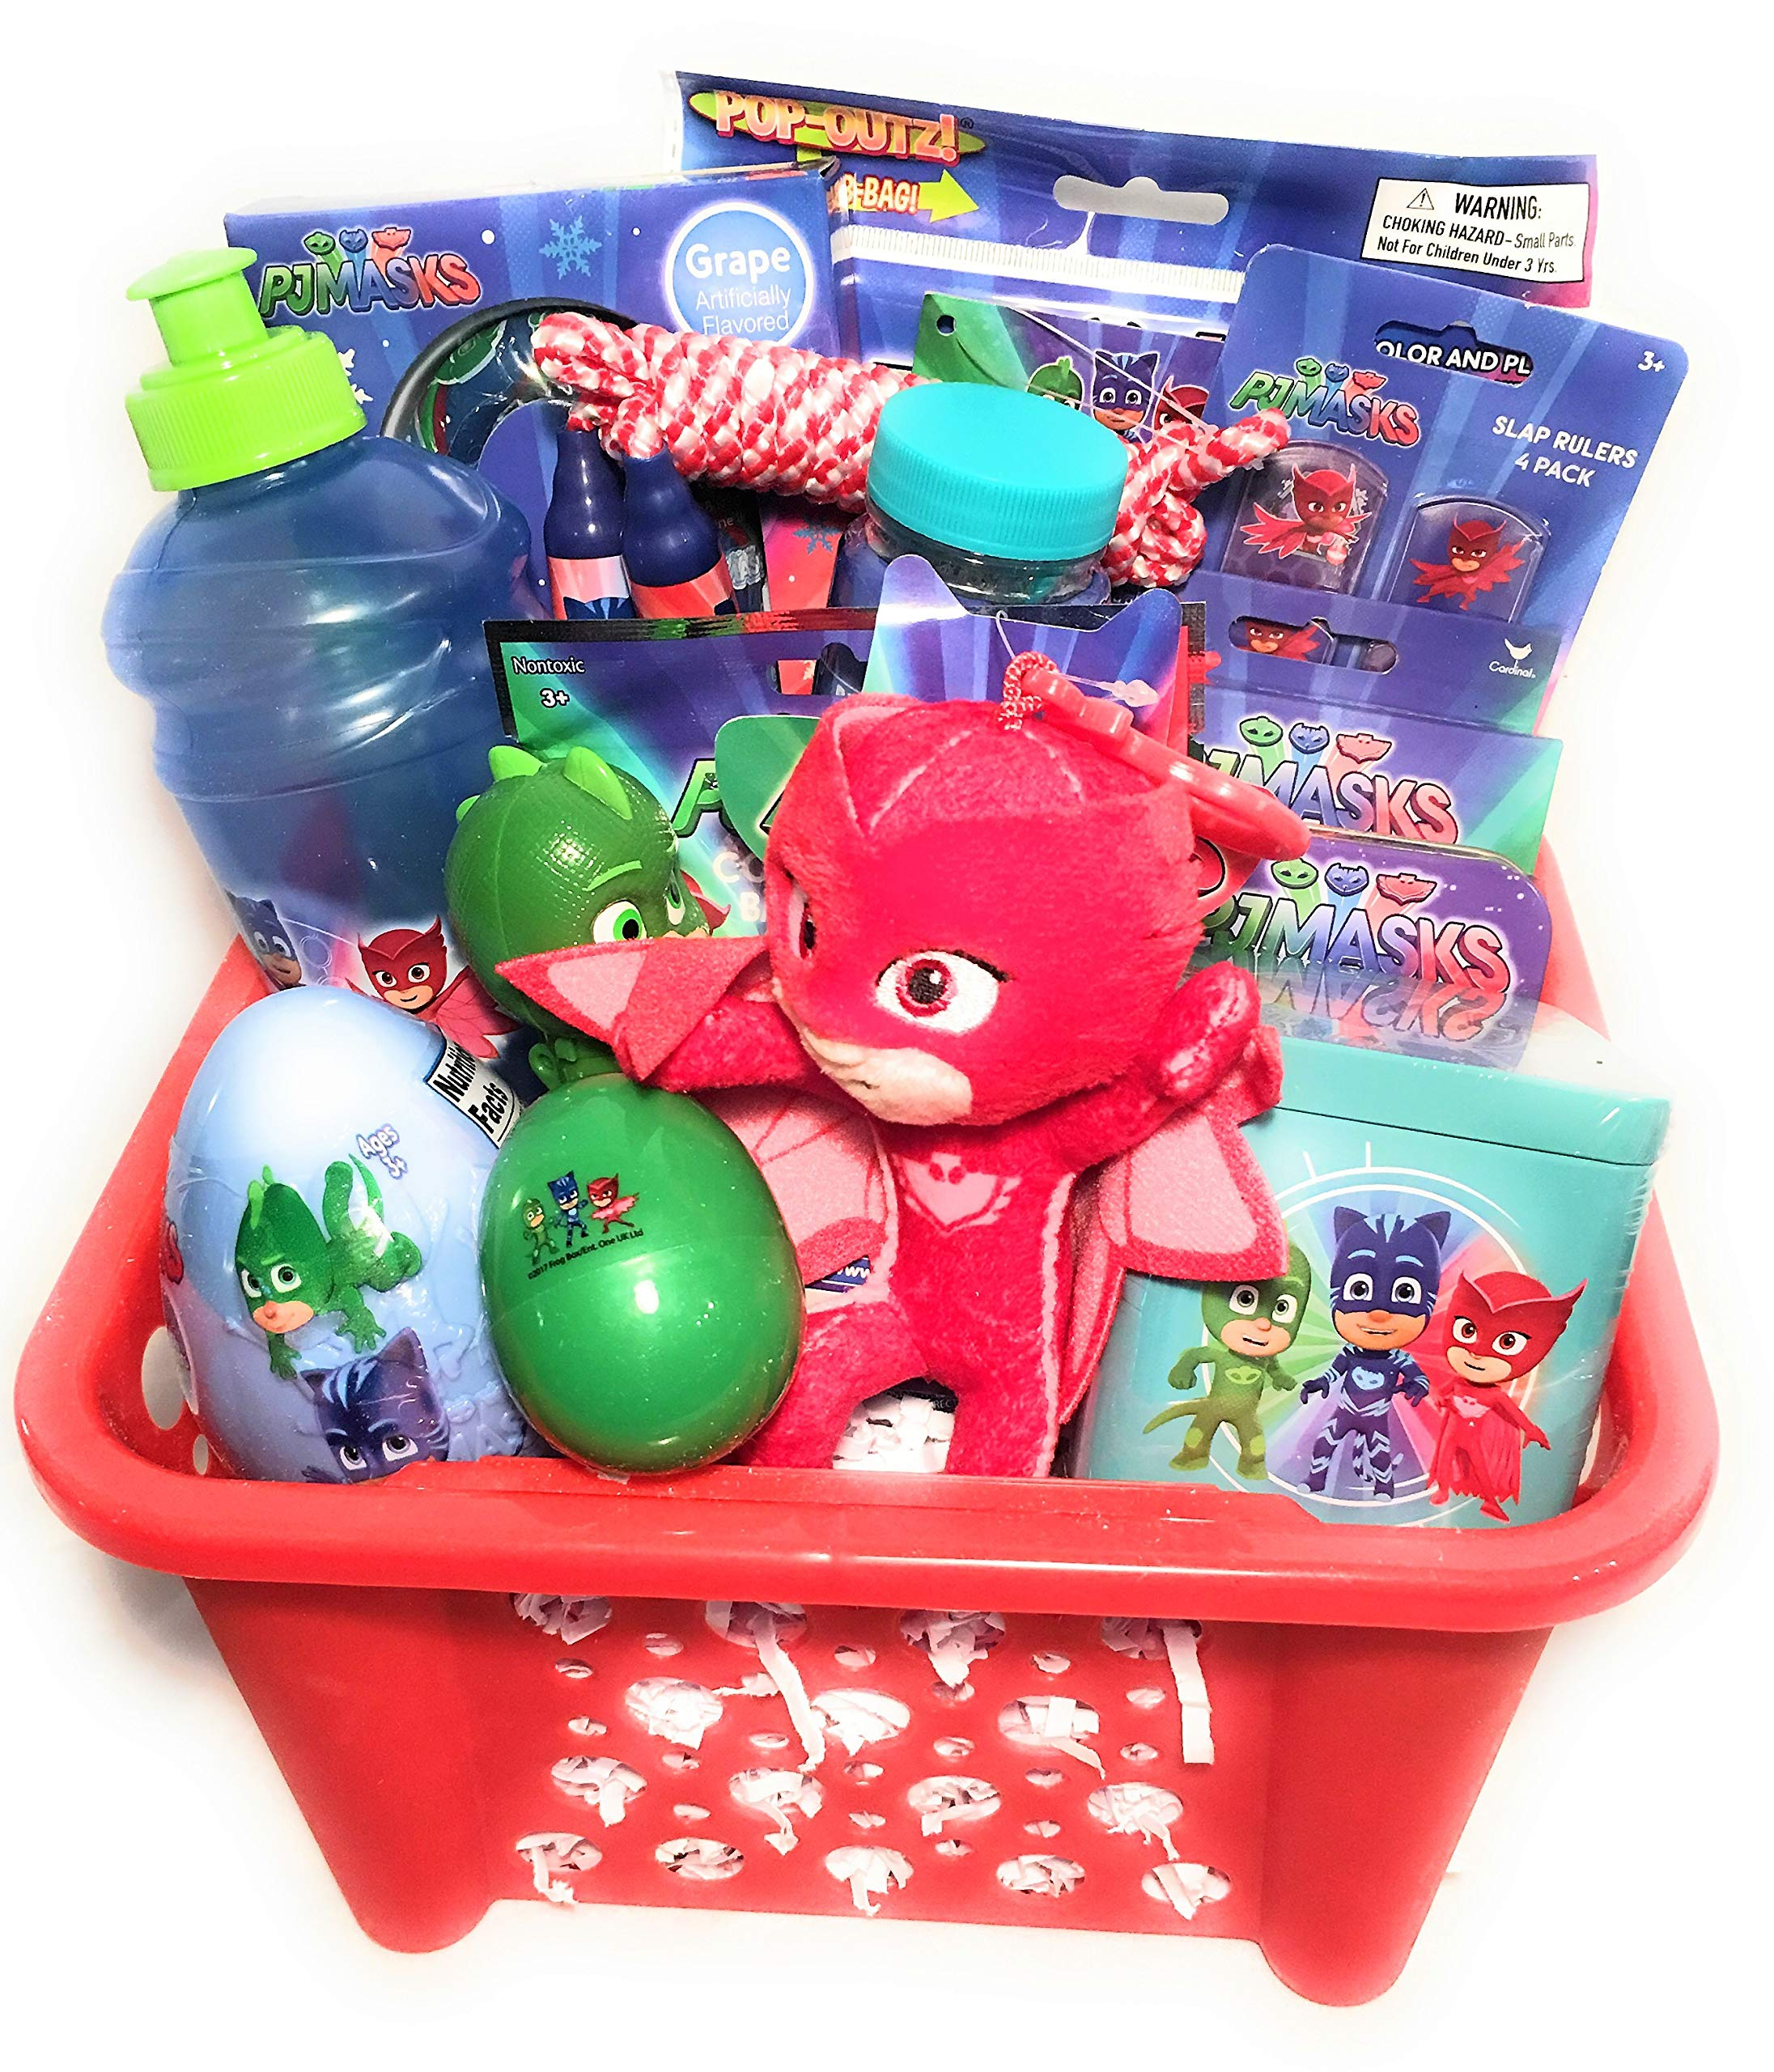 PJ Masks Easter Themed Baskets